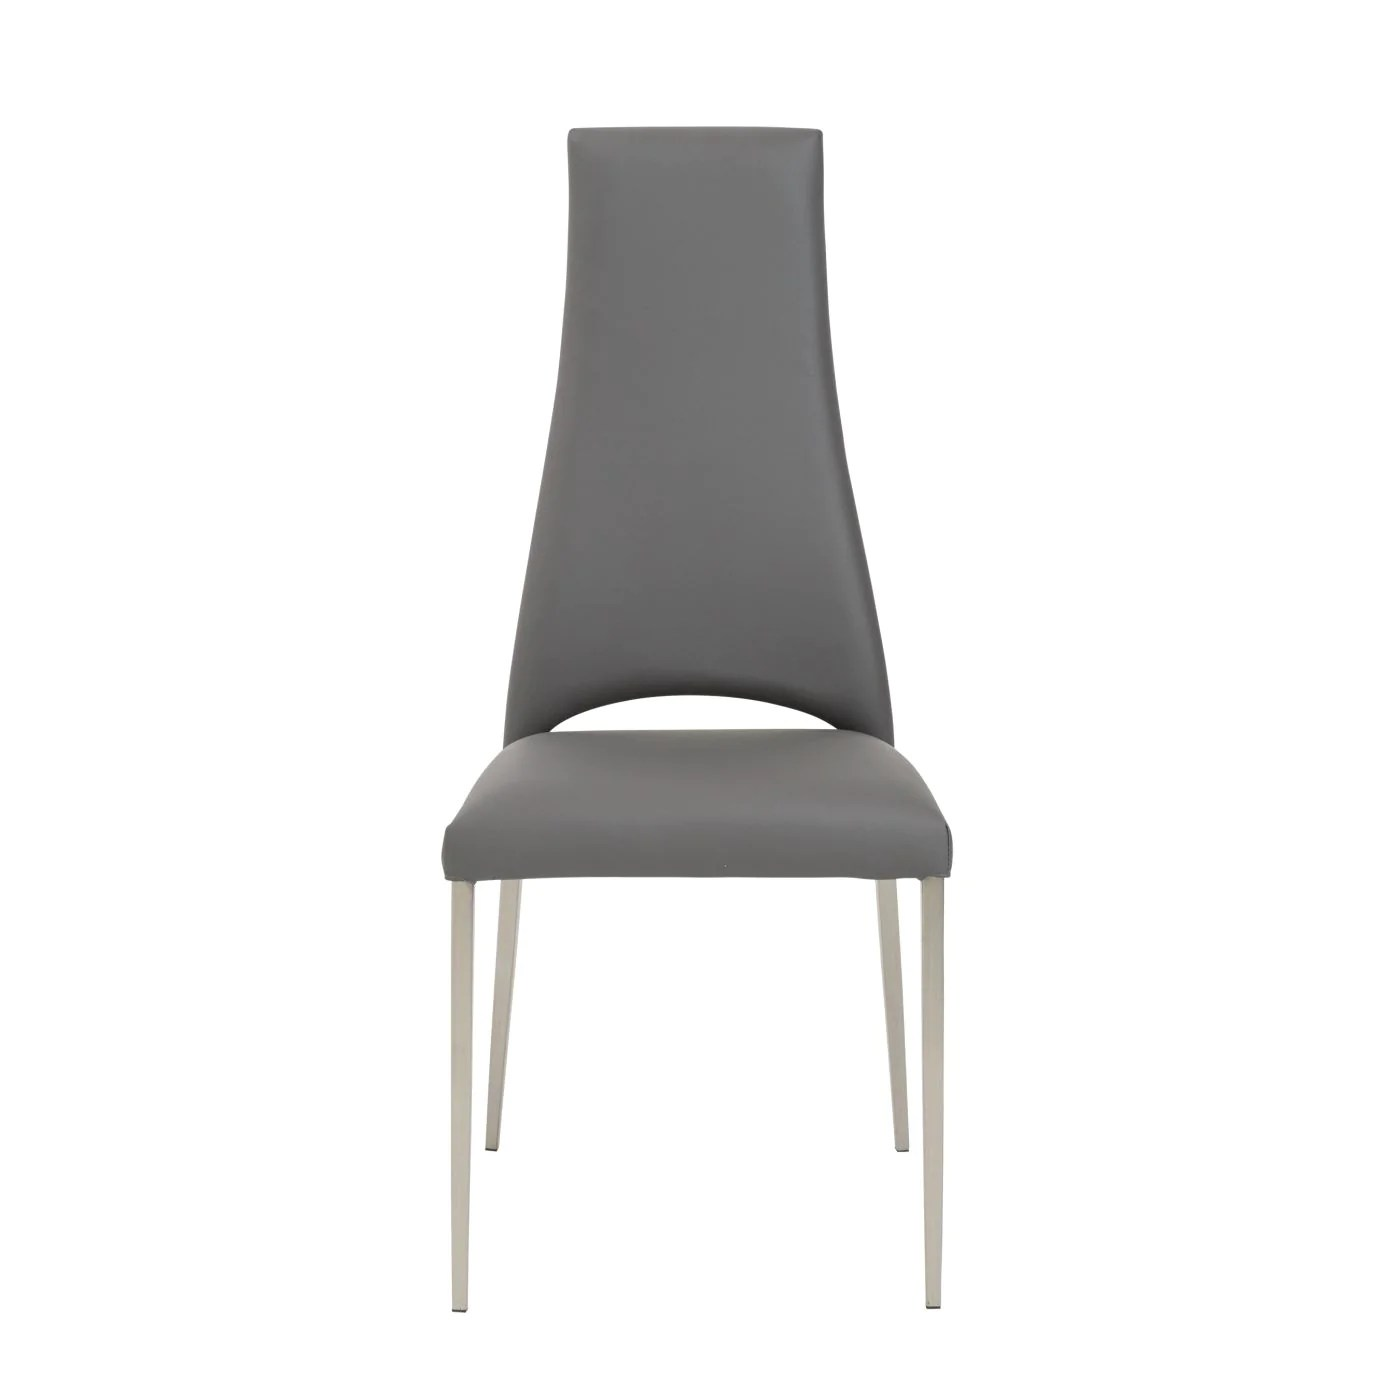 dining chairs with stainless steel legs aluminum rocking patio euro style tara chair in gray leatherette